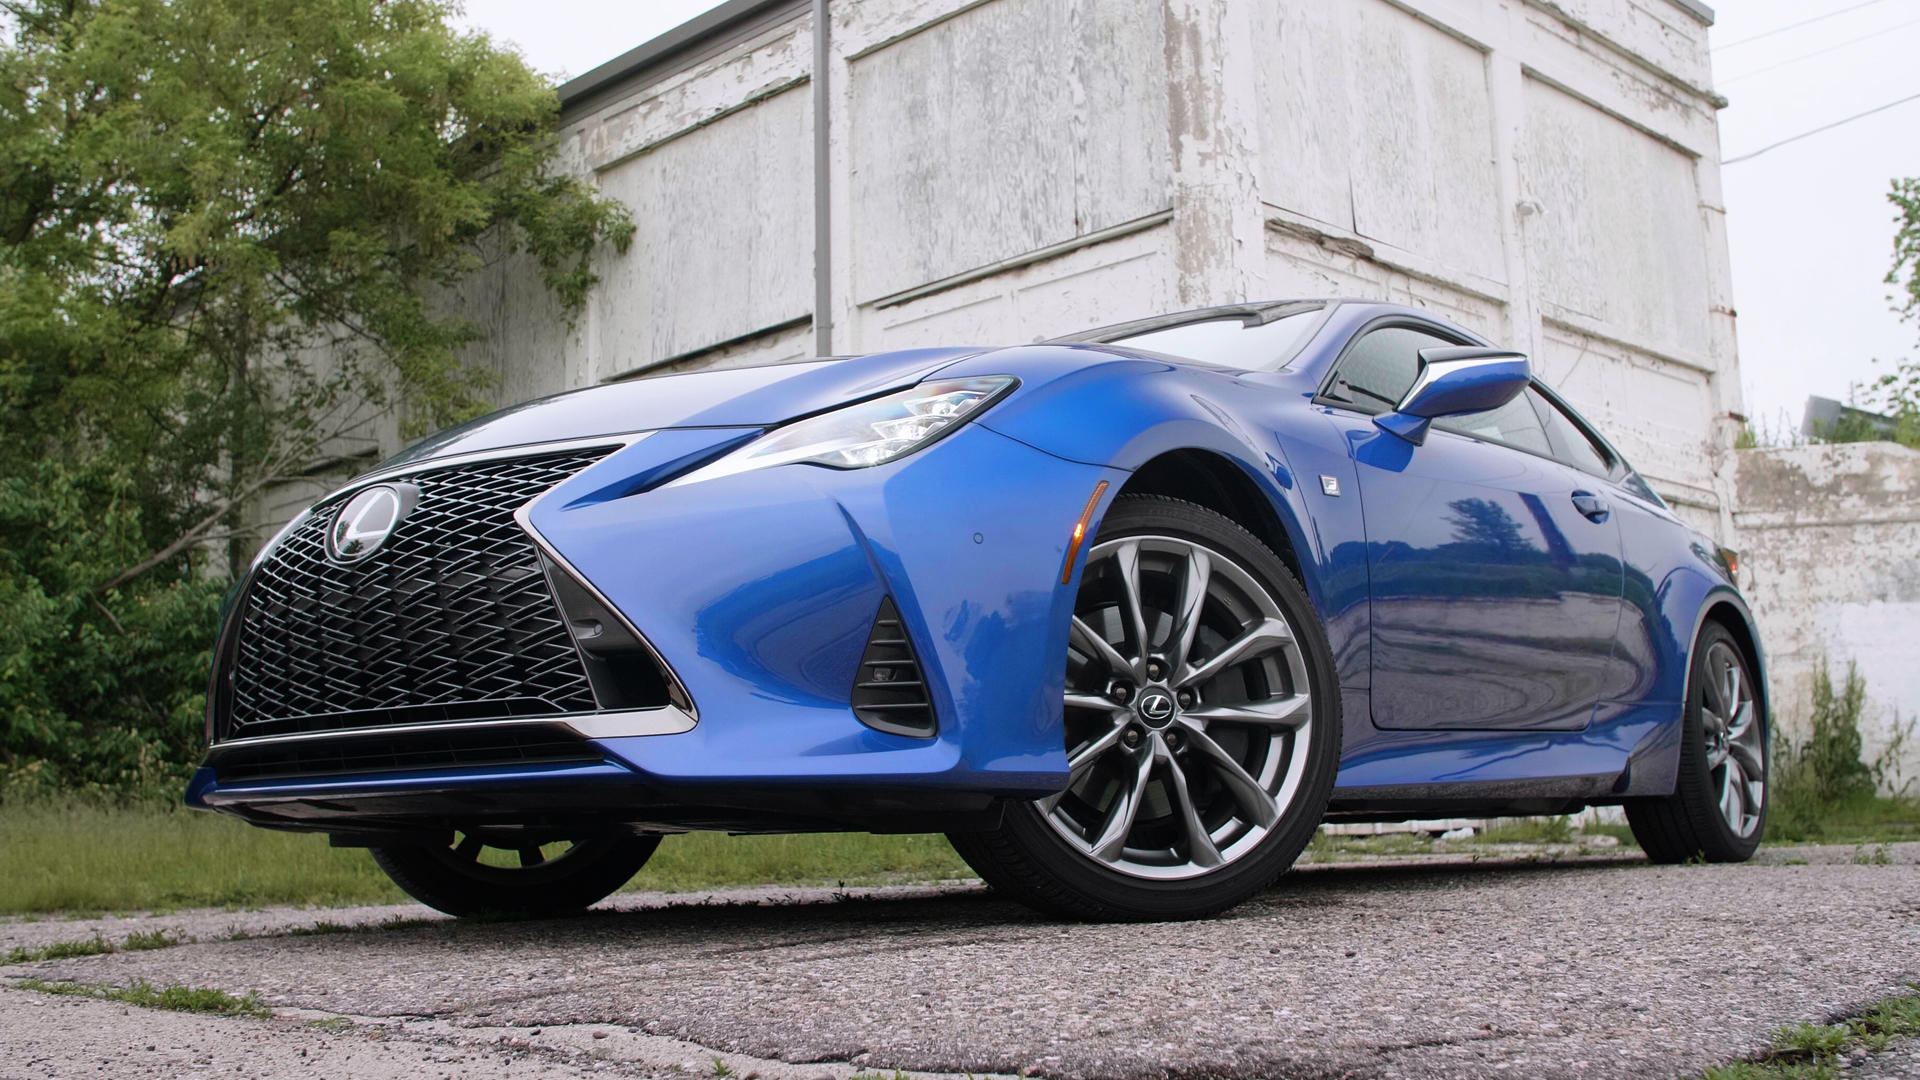 Video: 5 things you need to know about the 2019 Lexus RC 350